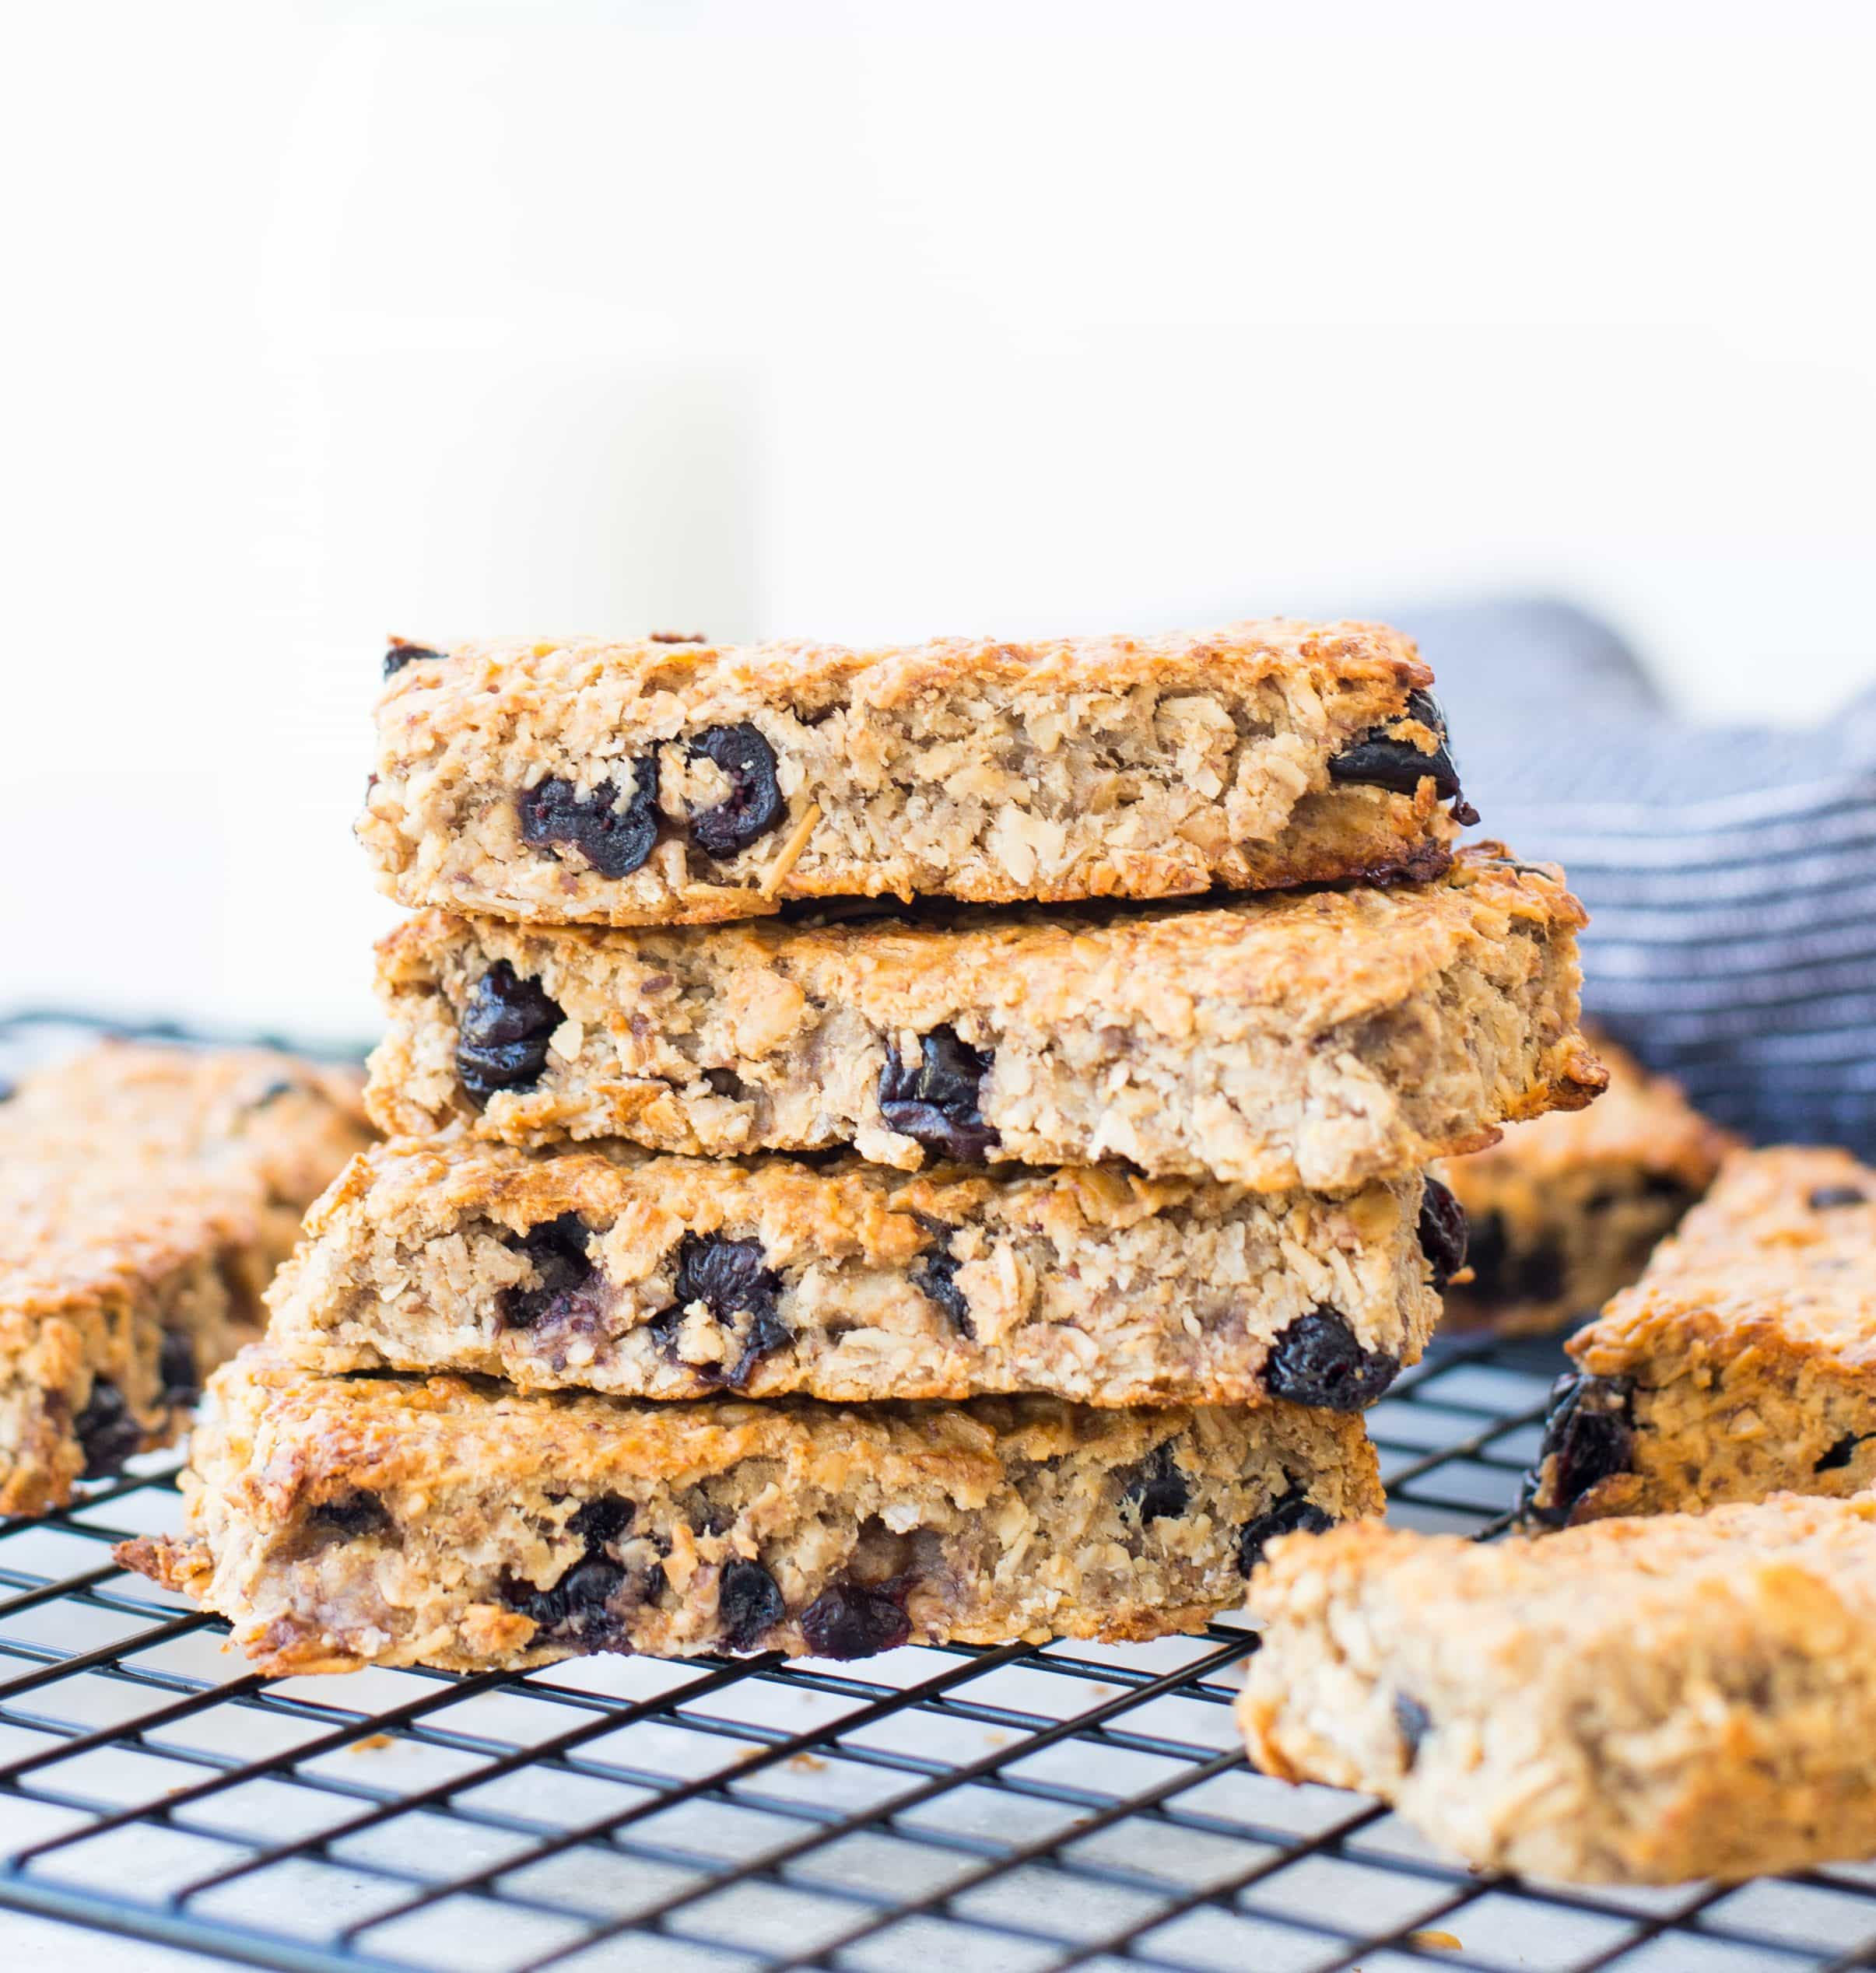 Healthy Blueberry Banana Granola bar is our new obsession at home. These soft and chewy homemade granola bars are gluten-free, vegan and refined sugar-free.